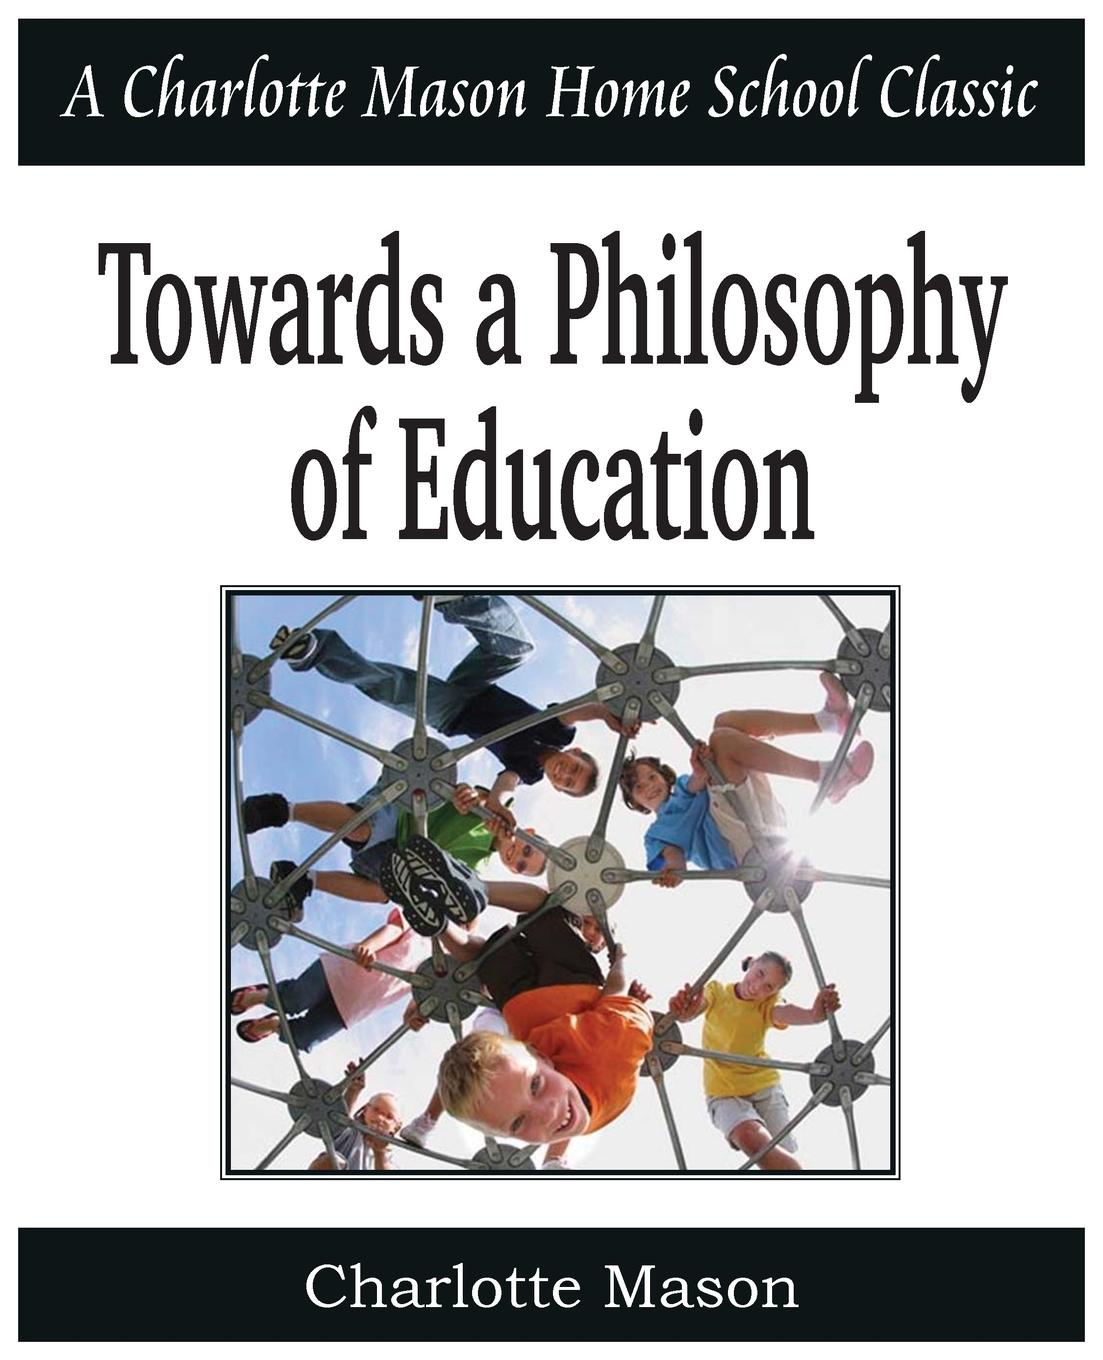 Charlotte Mason Towards a Philosophy of Education. Charlotte Mason Homeschooling Series, Vol. 6 moral philosophy lifelong learning and nigerian education